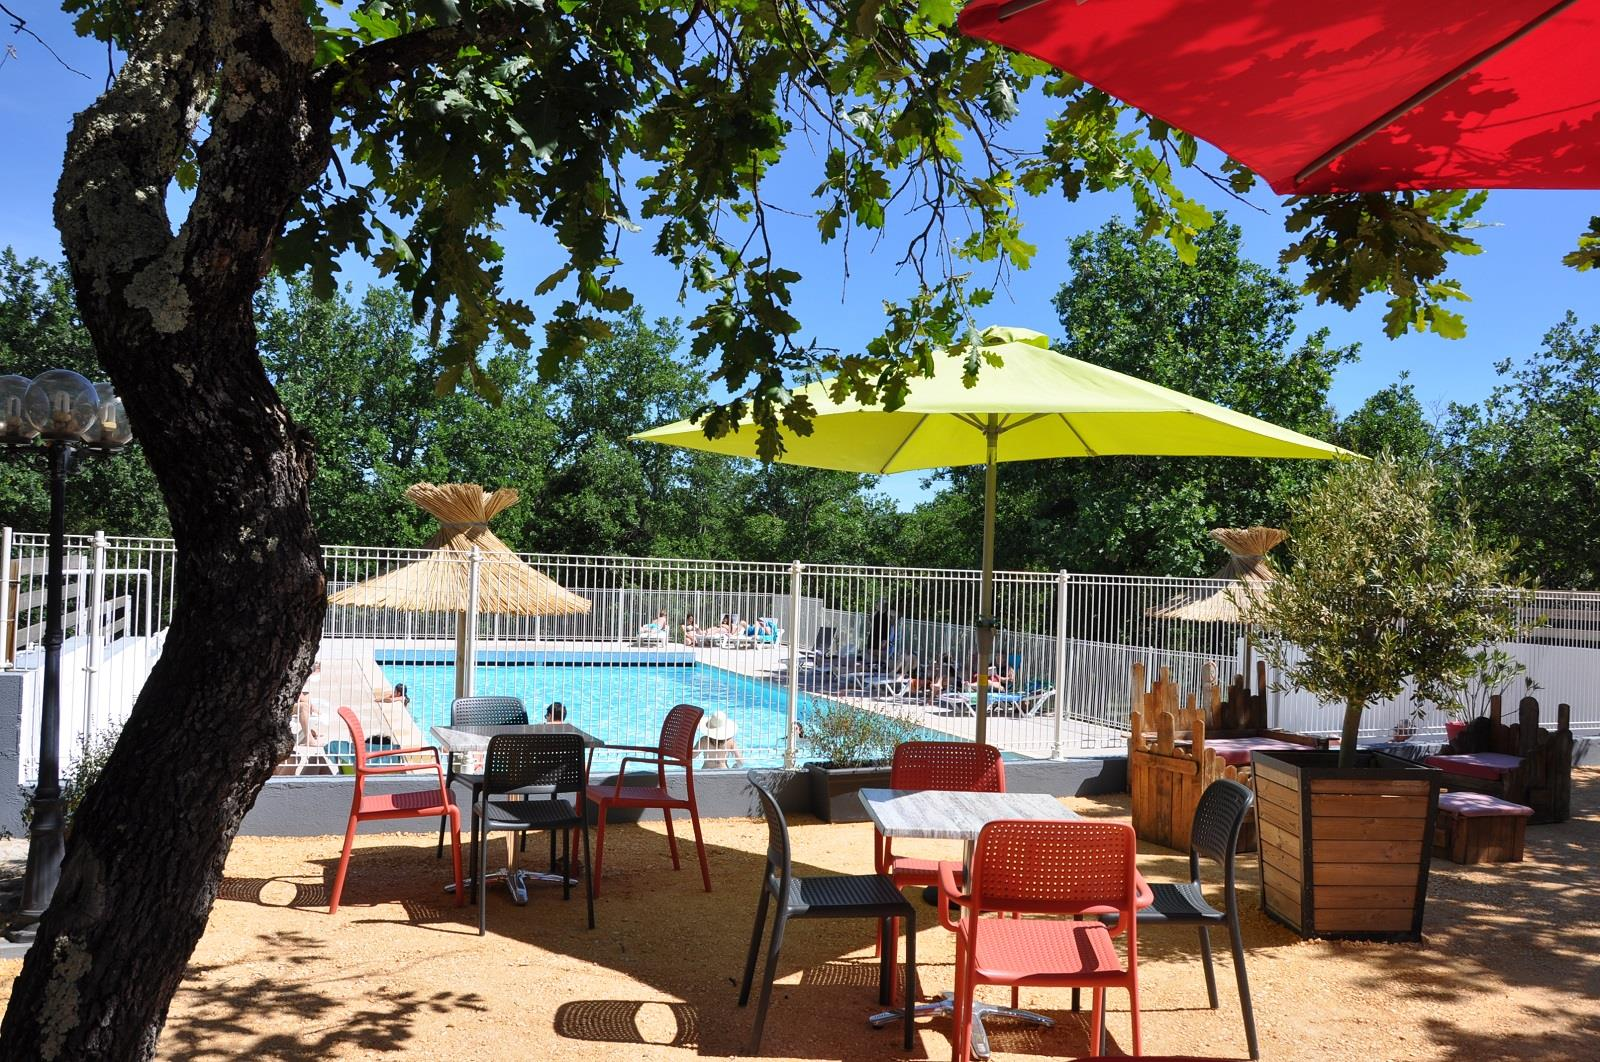 Camping l'Ombrage, Lagorce, Ardèche